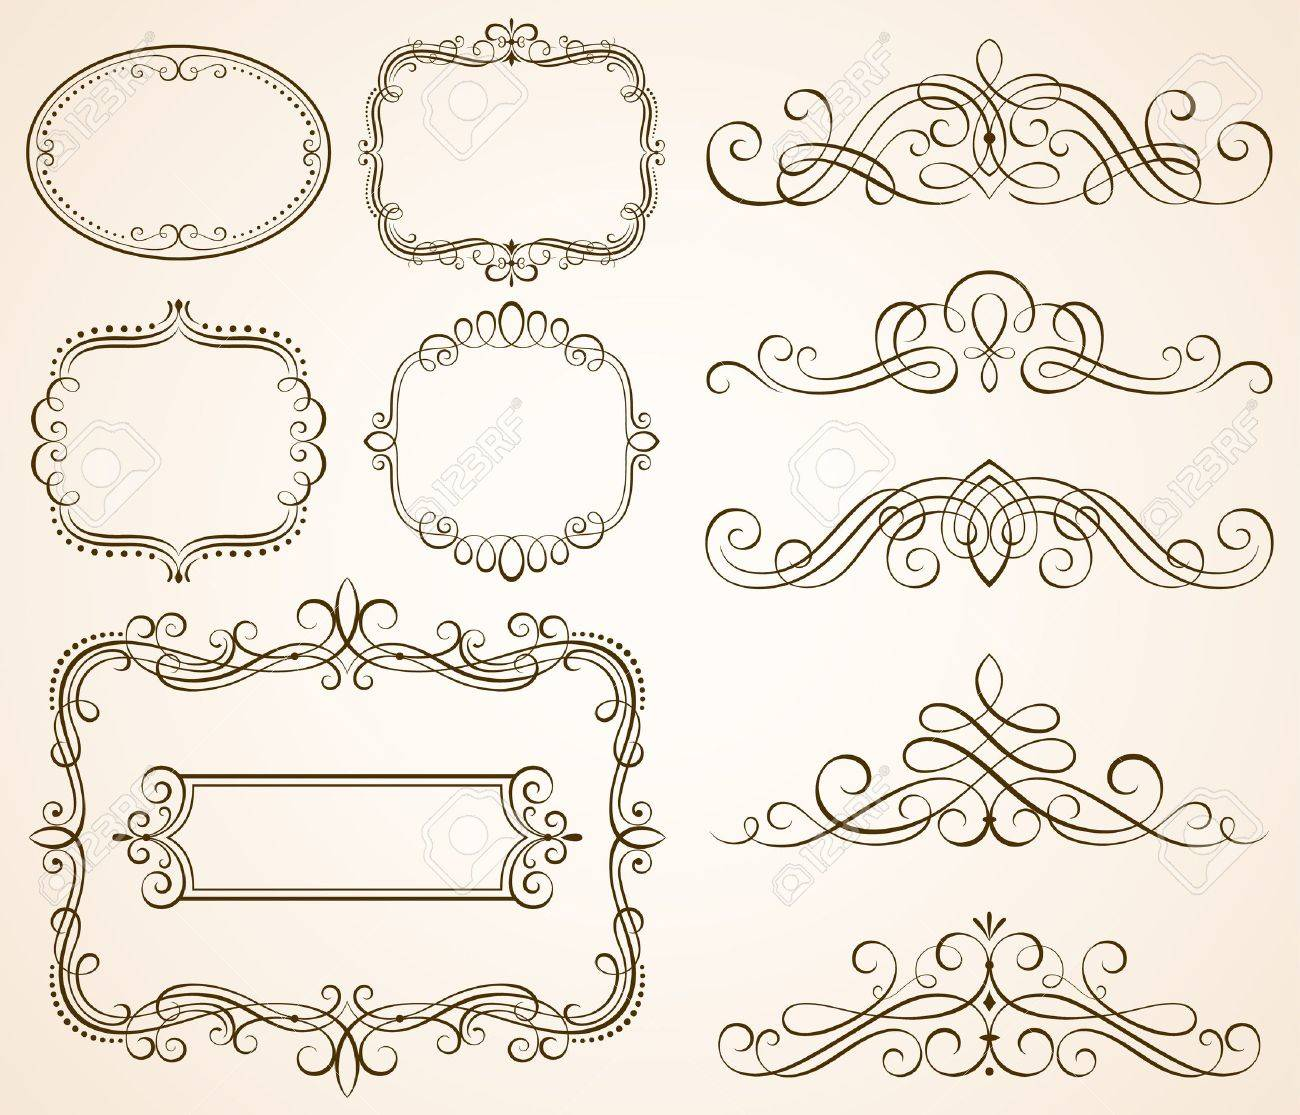 Set of decorative frames and scroll elements vector illustration. Stock Vector - 45260708